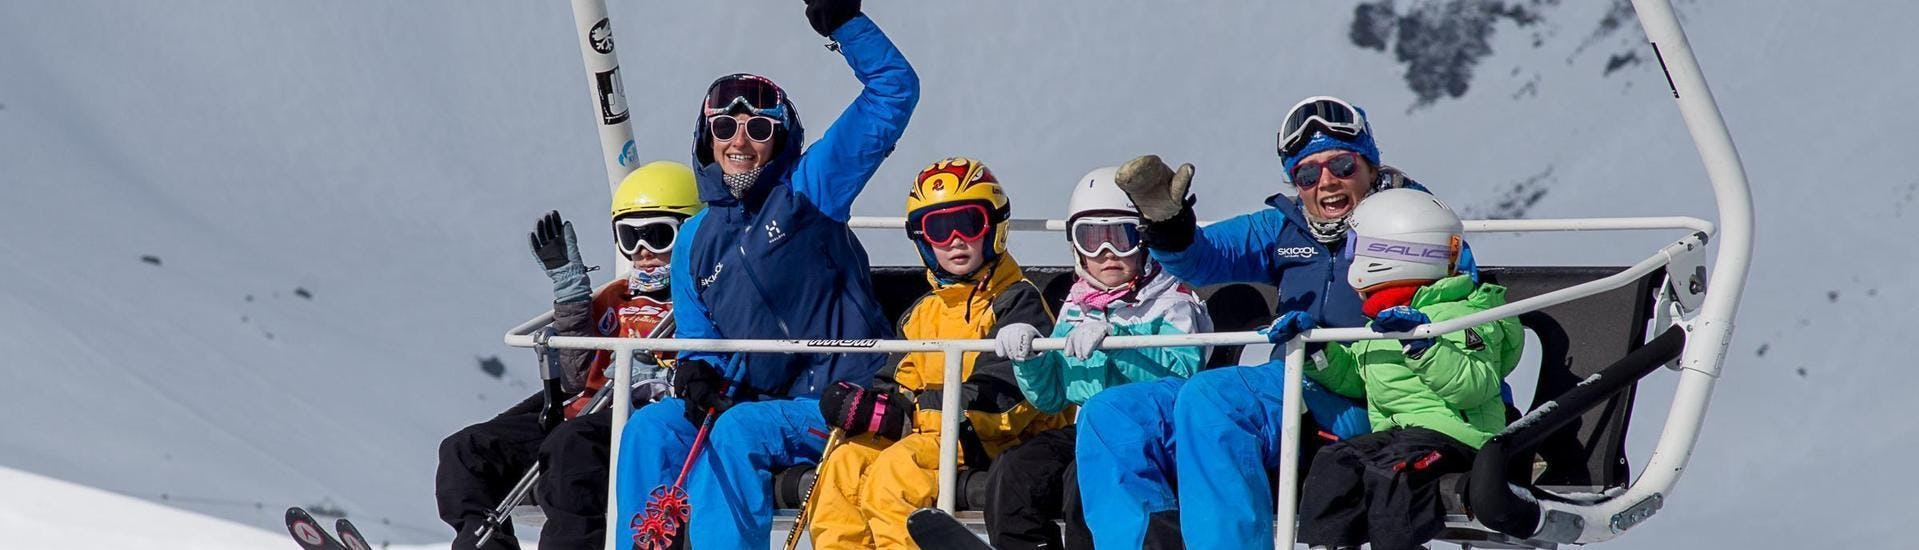 A group of children is riding the chair lift together with their ski instructors from the ski school Ski Cool during their Private Ski Lessons for Kids - School Holiday - Morning in the ski resort of Val Thorens.